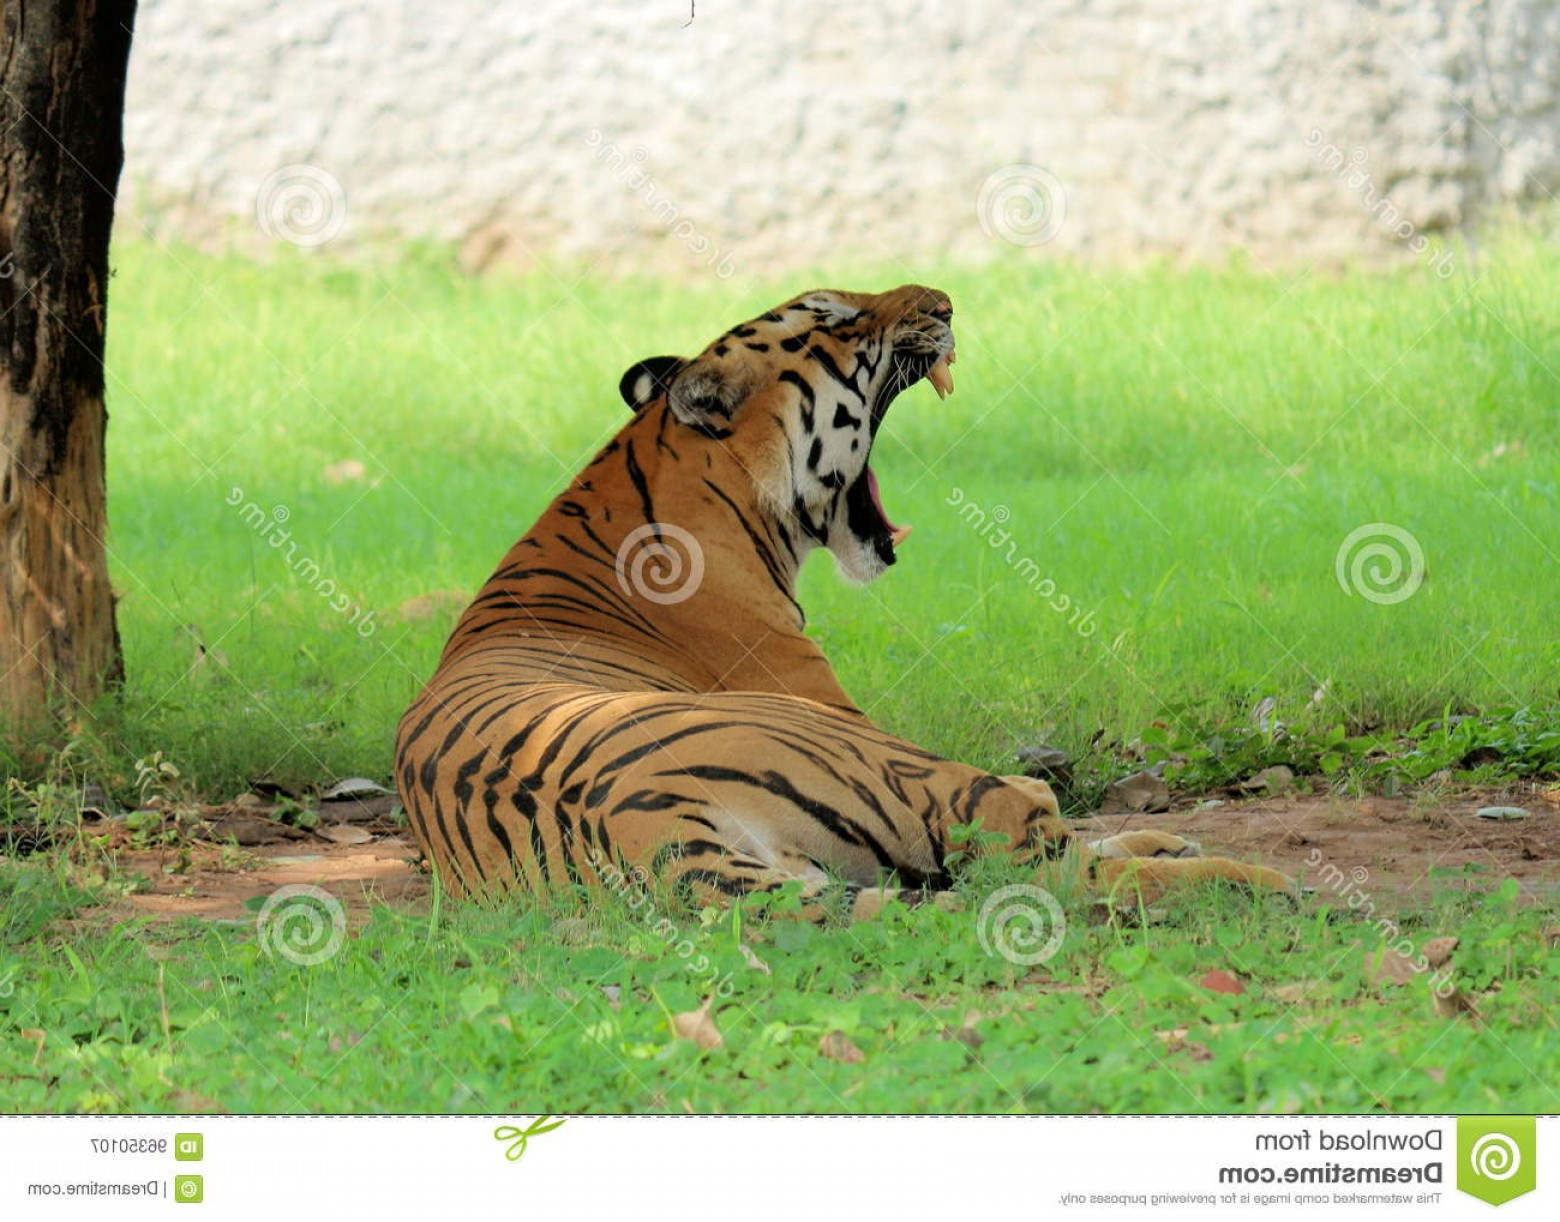 Full Body Tiger Roaring Vector: Stock Photo Royal Bengal Tiger Roar Resting Sleeping Sitting Critically Endangered Species Asian Chattbir Zoo Chandigarh India Image